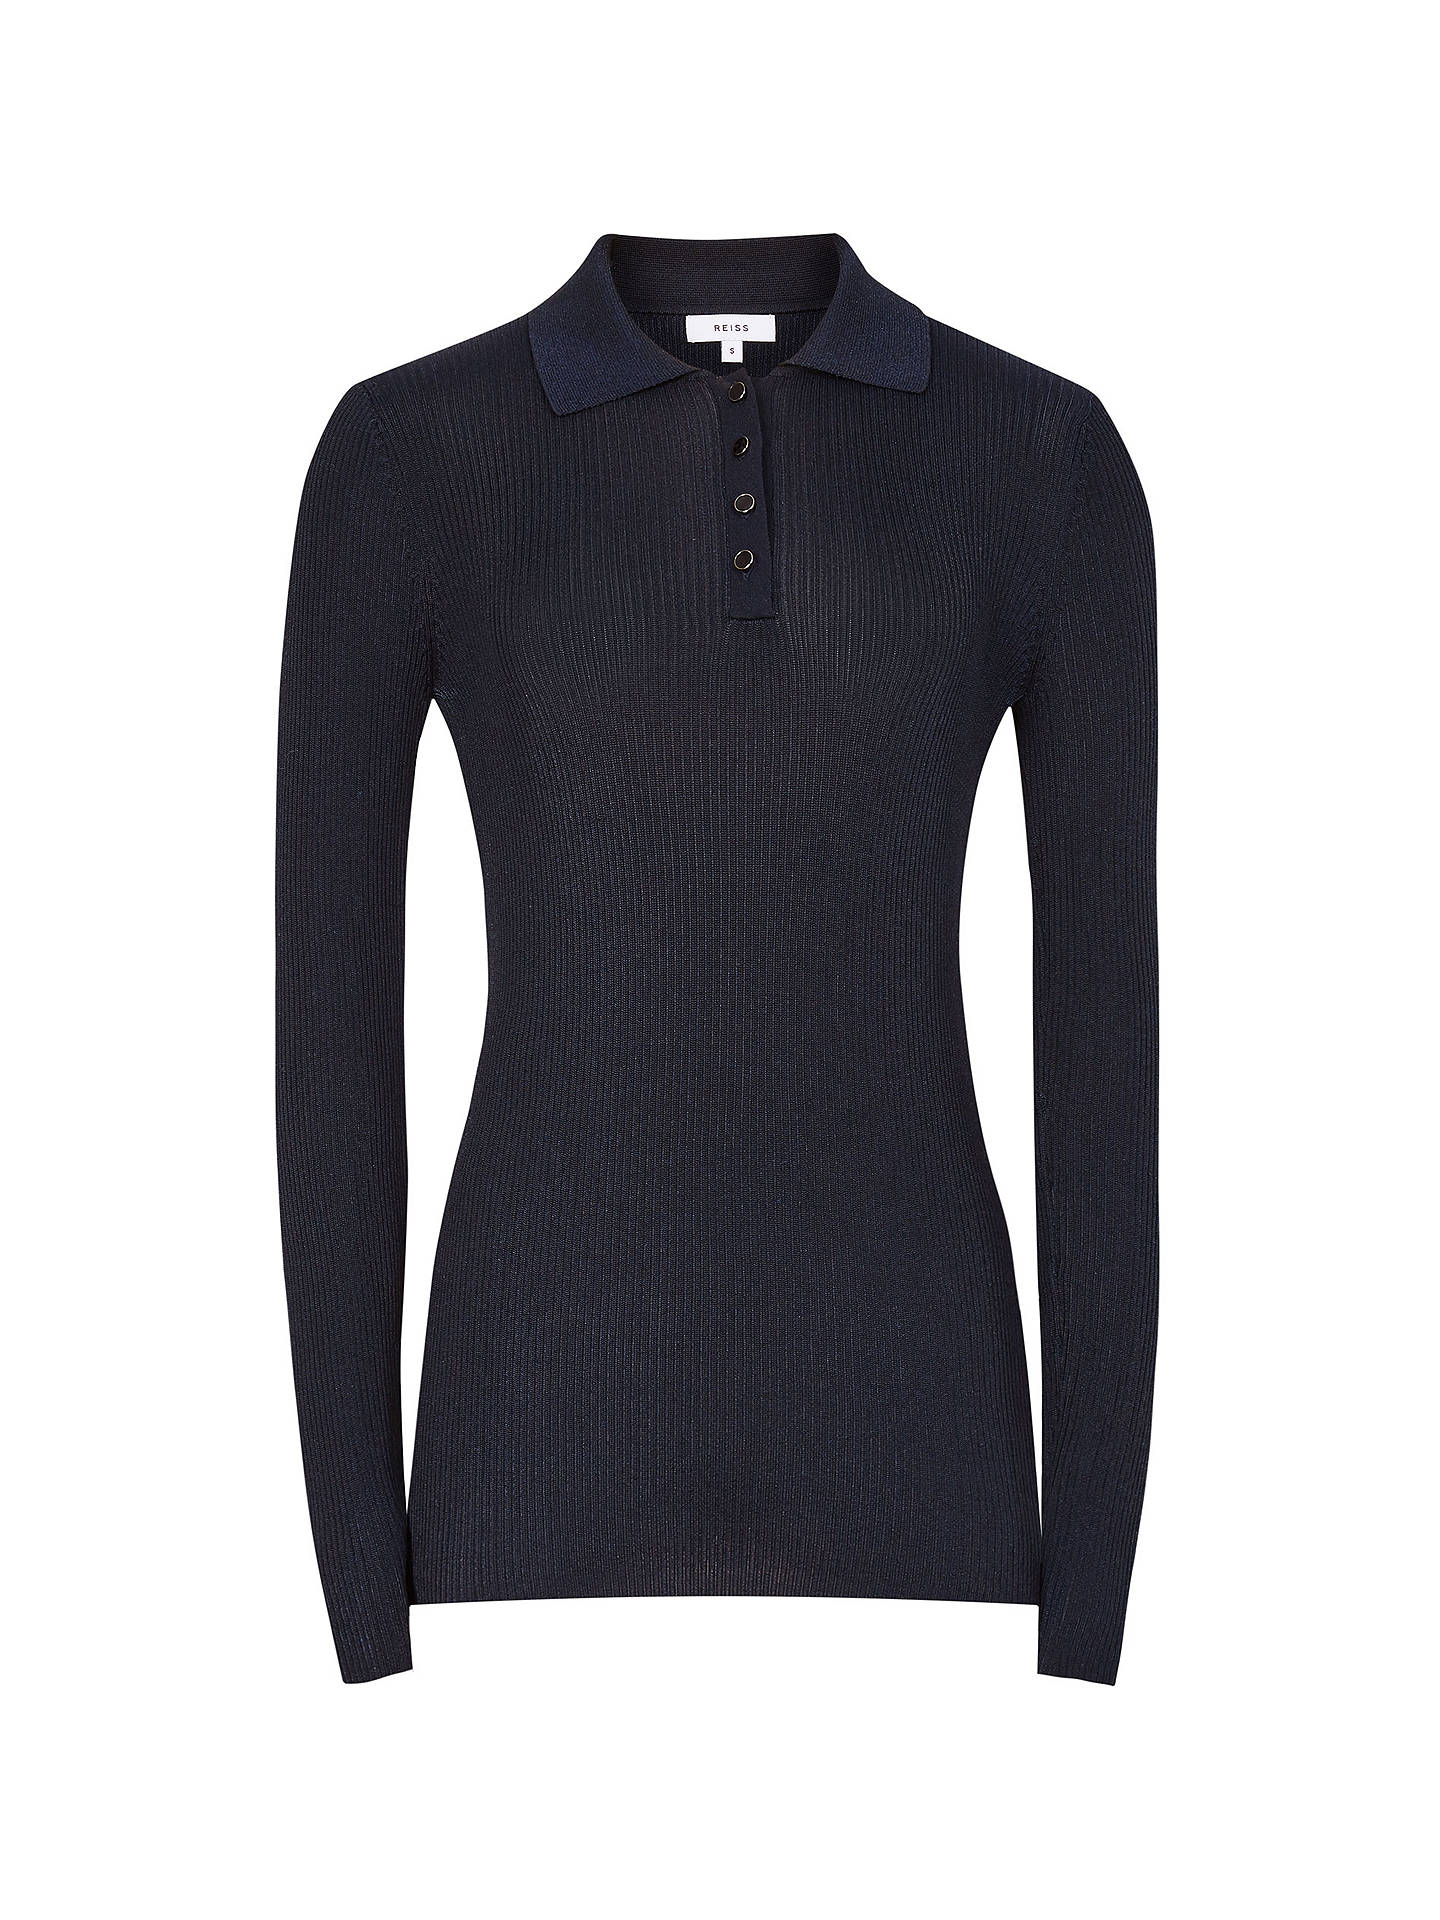 Buy Reiss Long Sleeve Knitted Polo Shirt, Navy, XS Online at johnlewis.com